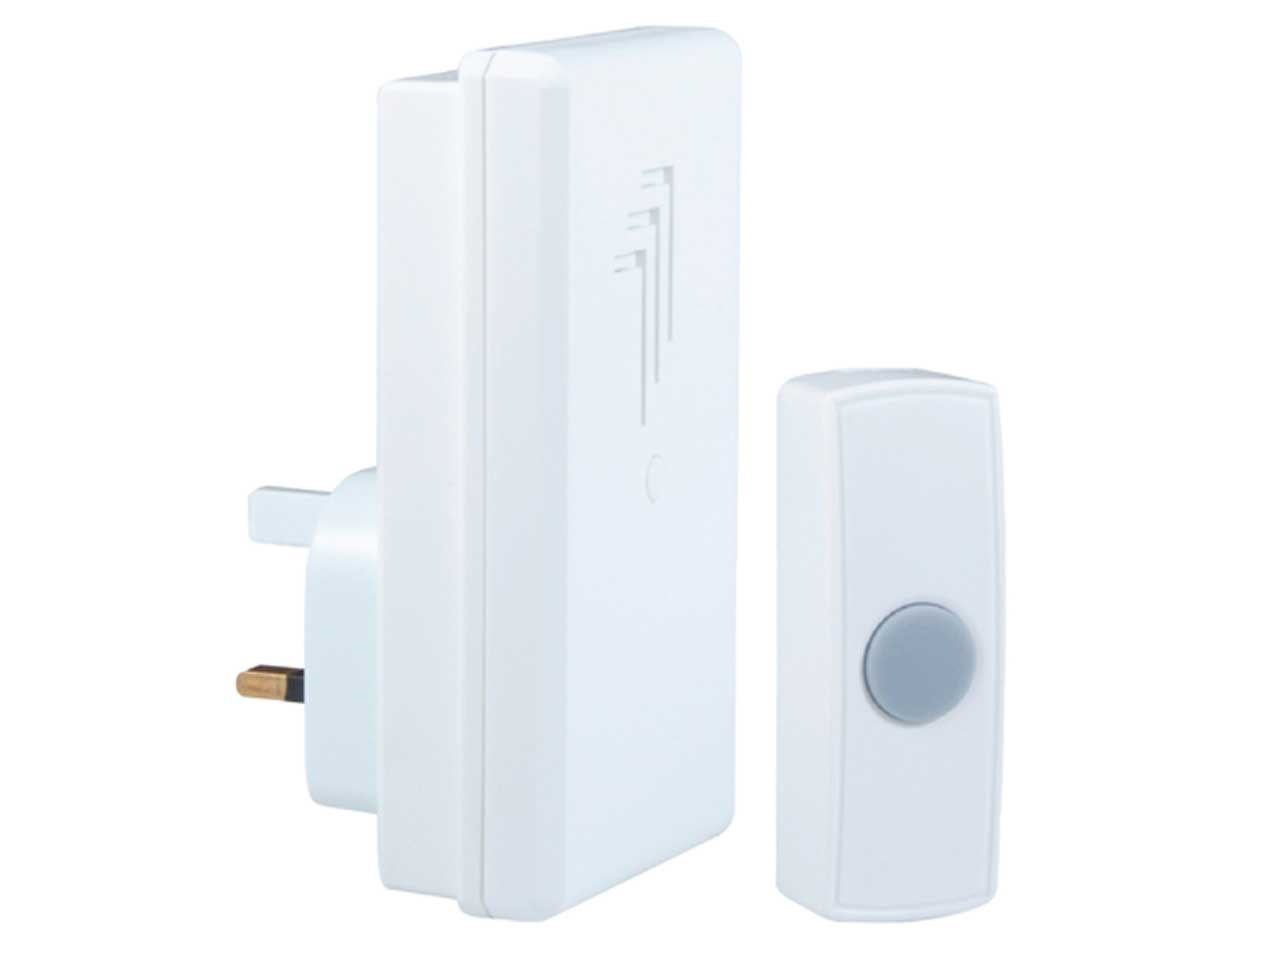 waterproof cacazi doorbell powered bell wireless smart volume door chime malaysia buy plug self gold latest tunes button